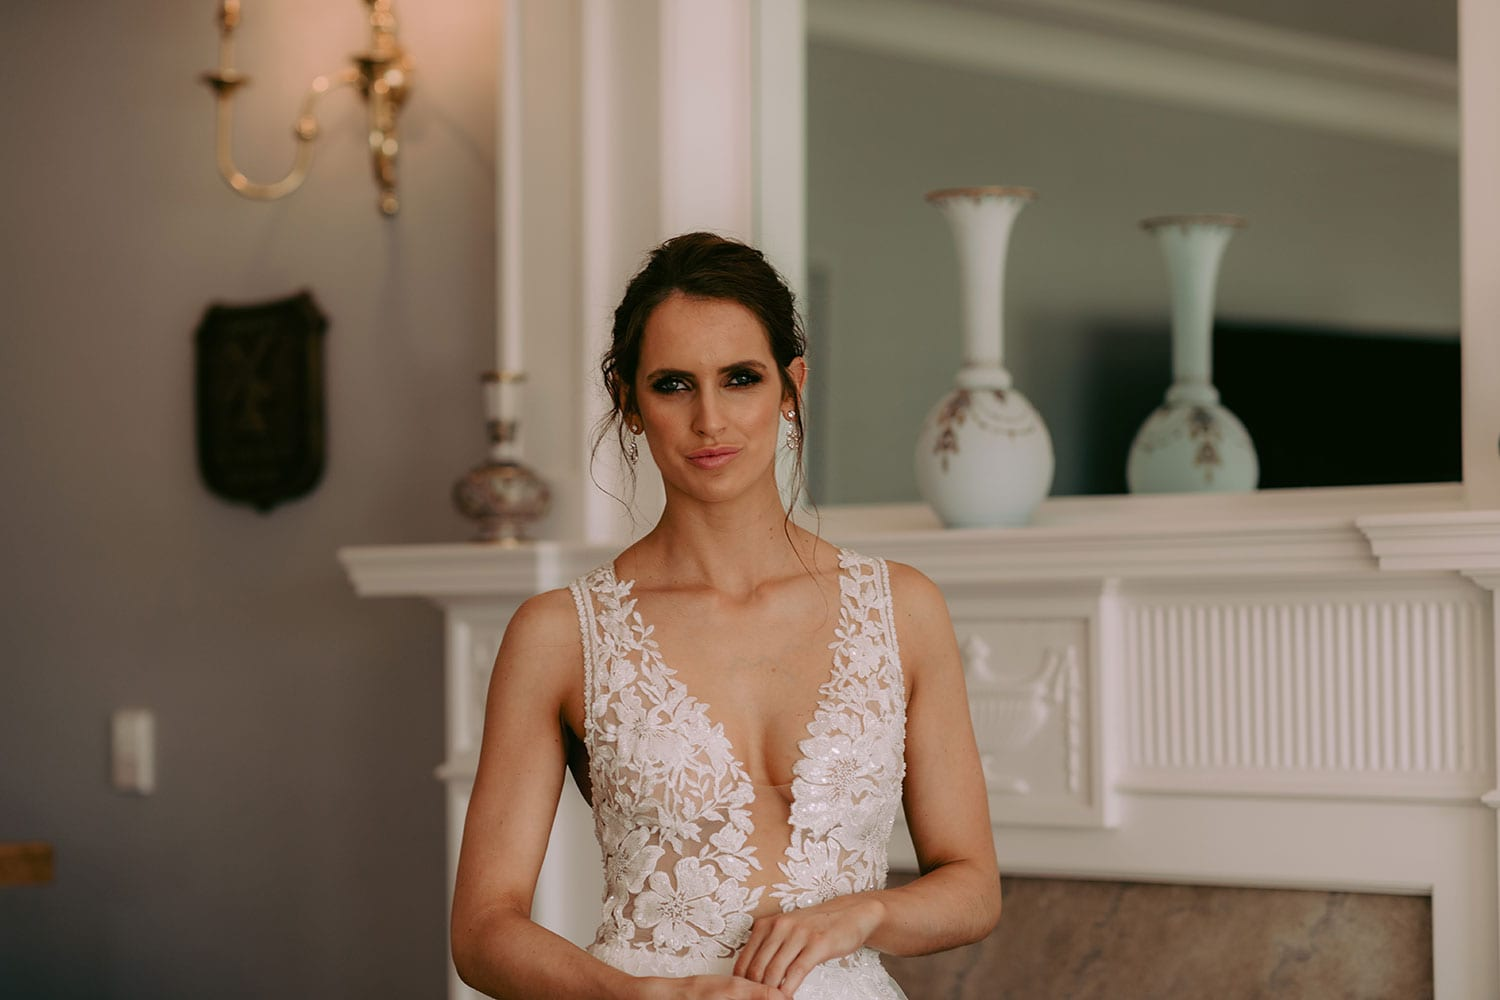 Tia Wedding gown from Vinka Design - This dreamy sculpted wedding dress has a deep V-shaped illusion neckline with beaded floral lace and an open back. The skirt has layers of soft tulle that glide with movement. Model wearing gown showing lace detail of bodice and straps, and V-neckline, inside warmly lit heritage room.